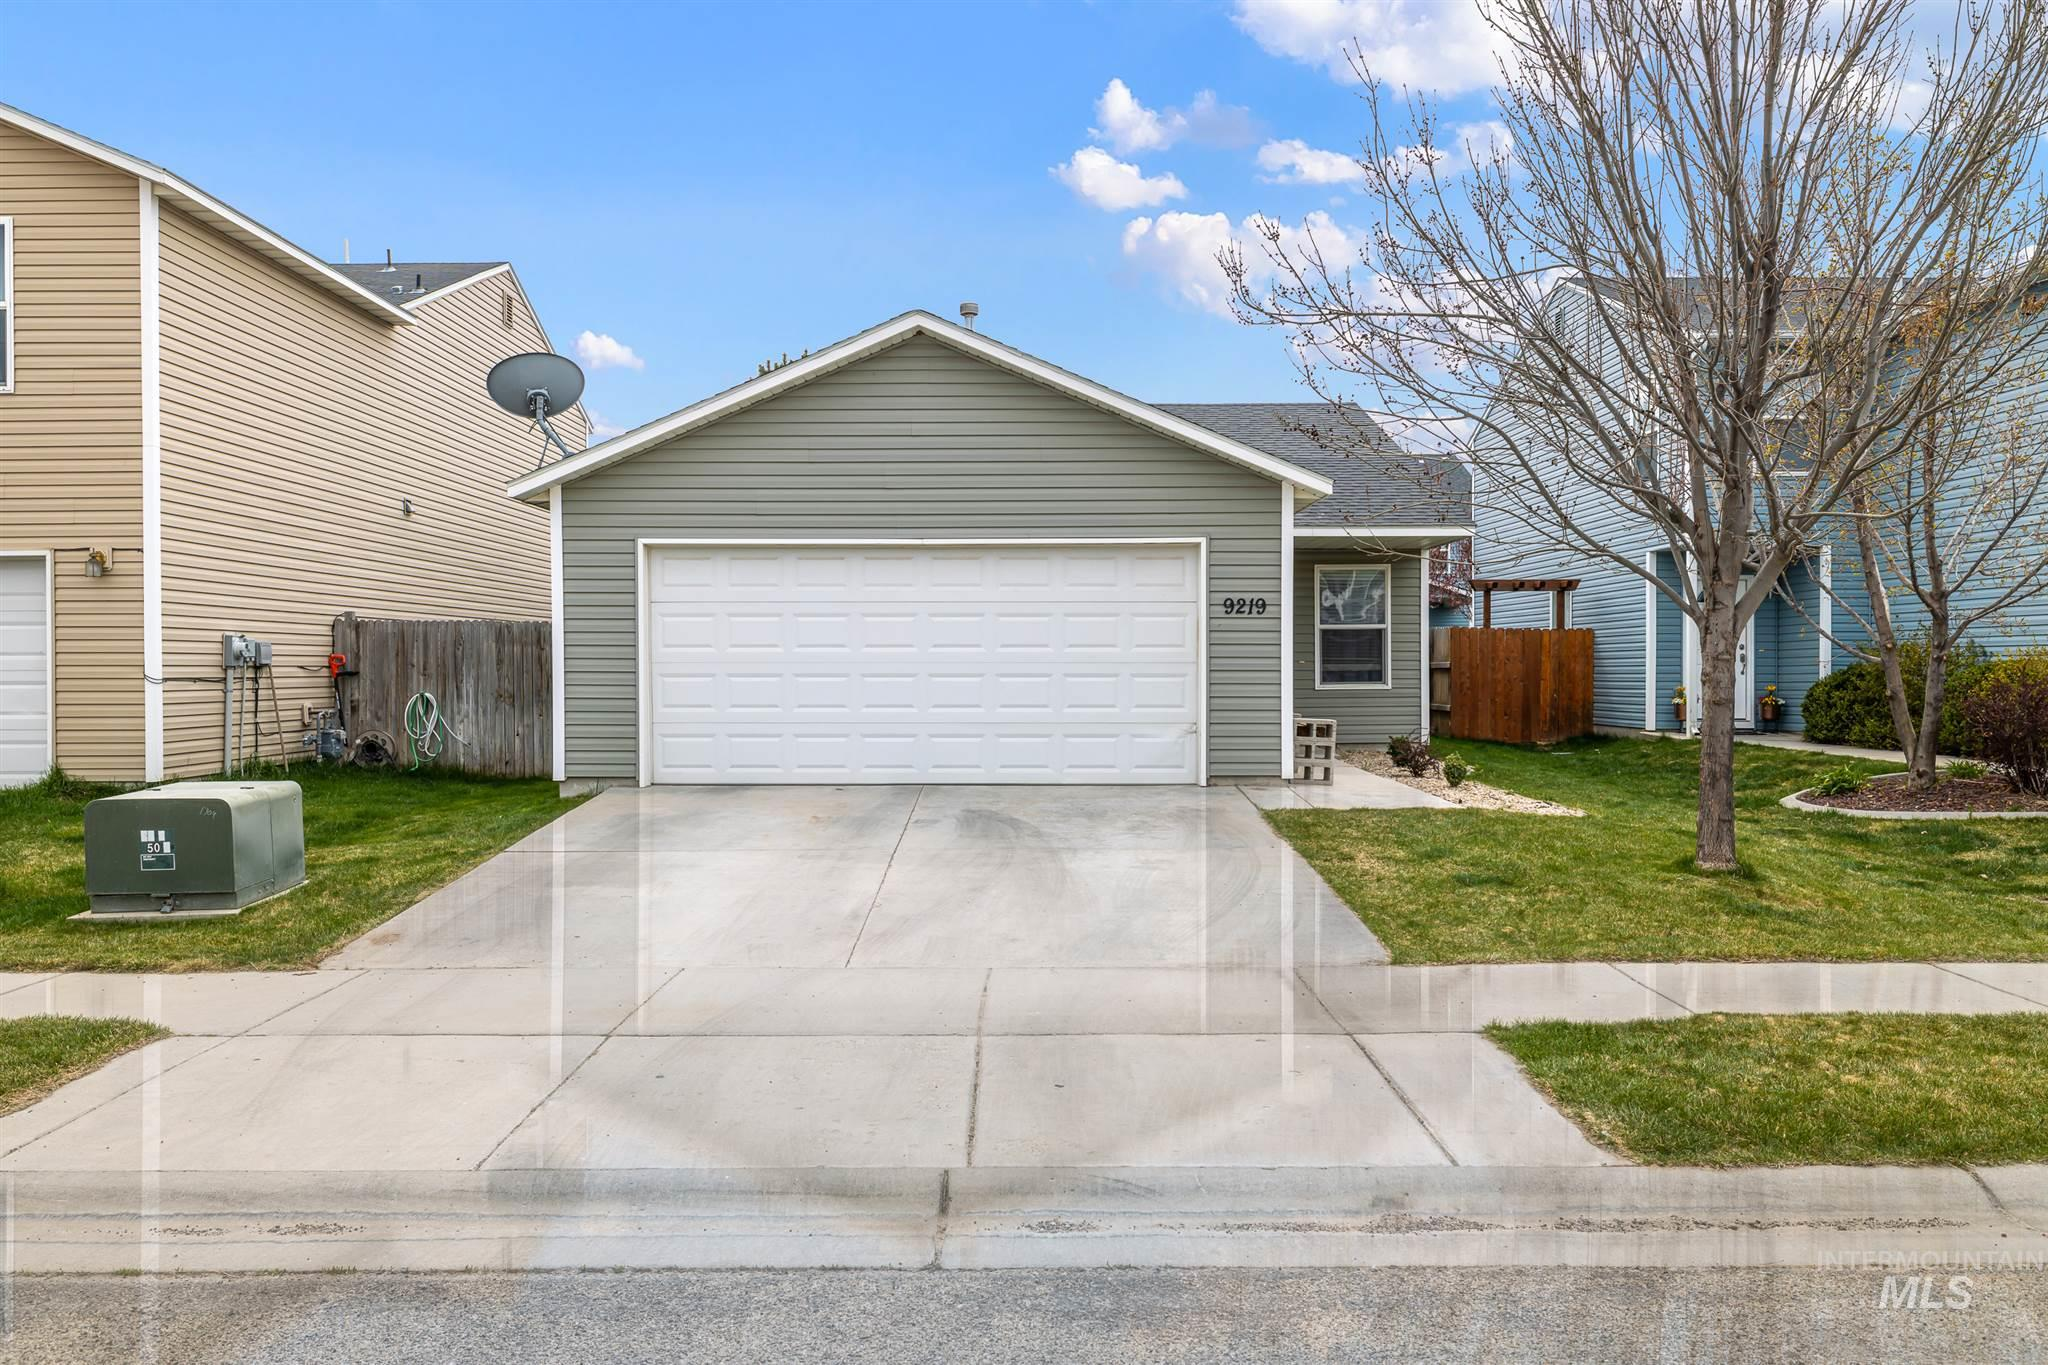 9219 W Hearthside Dr. Property Photo - Boise, ID real estate listing